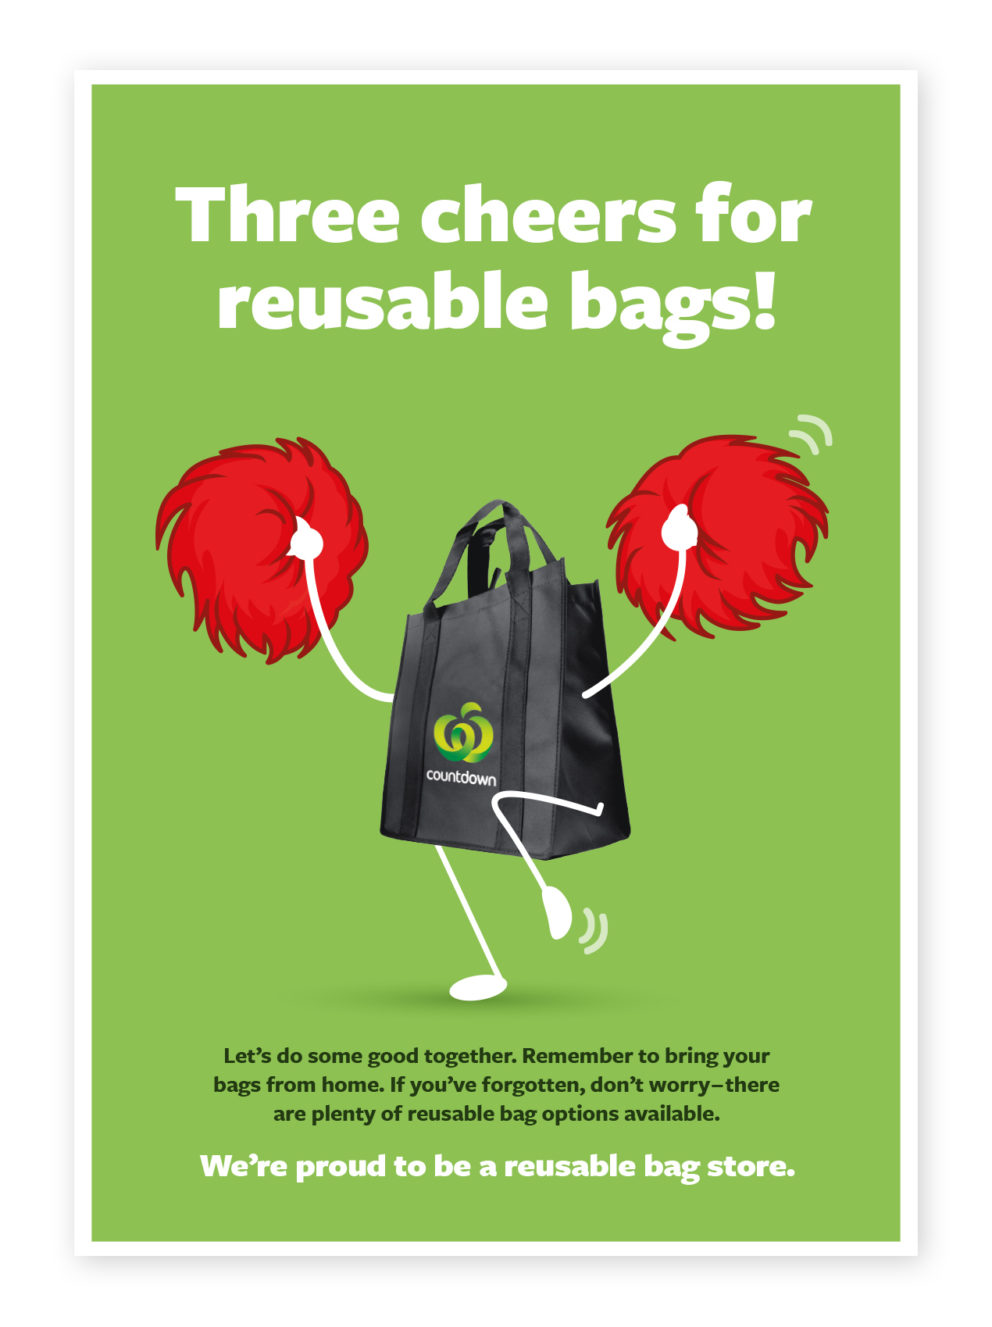 Three cheers for reusable bags - Bag for good TM